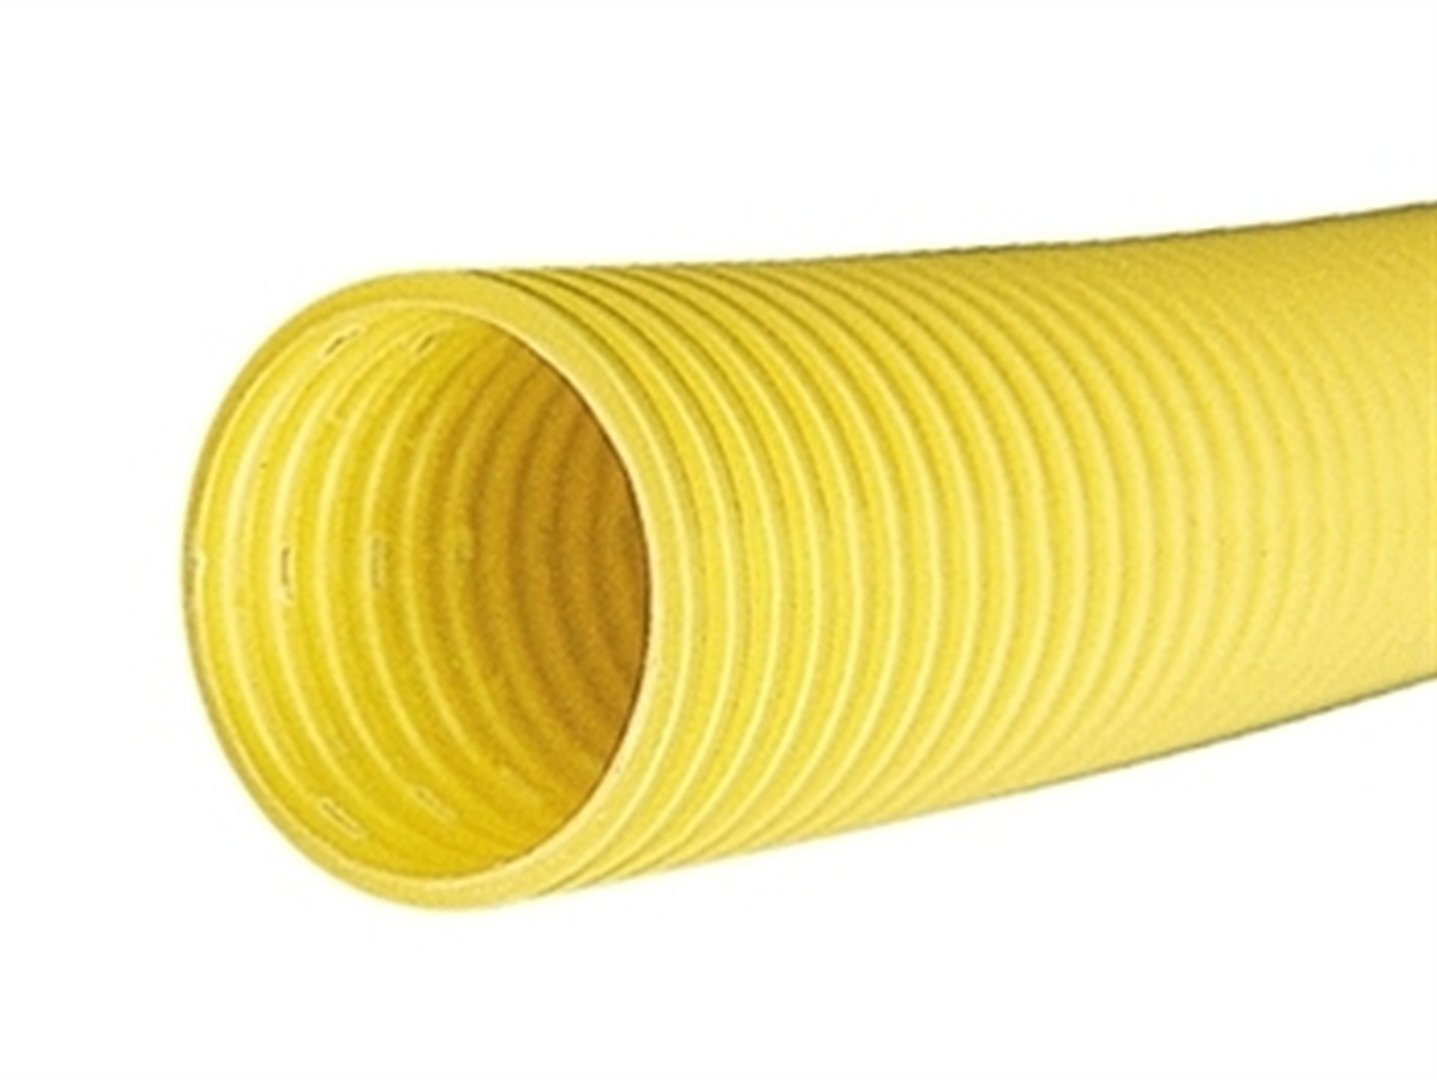 32 10 12ft drainage pipe dn50 yellow perforated drain. Black Bedroom Furniture Sets. Home Design Ideas